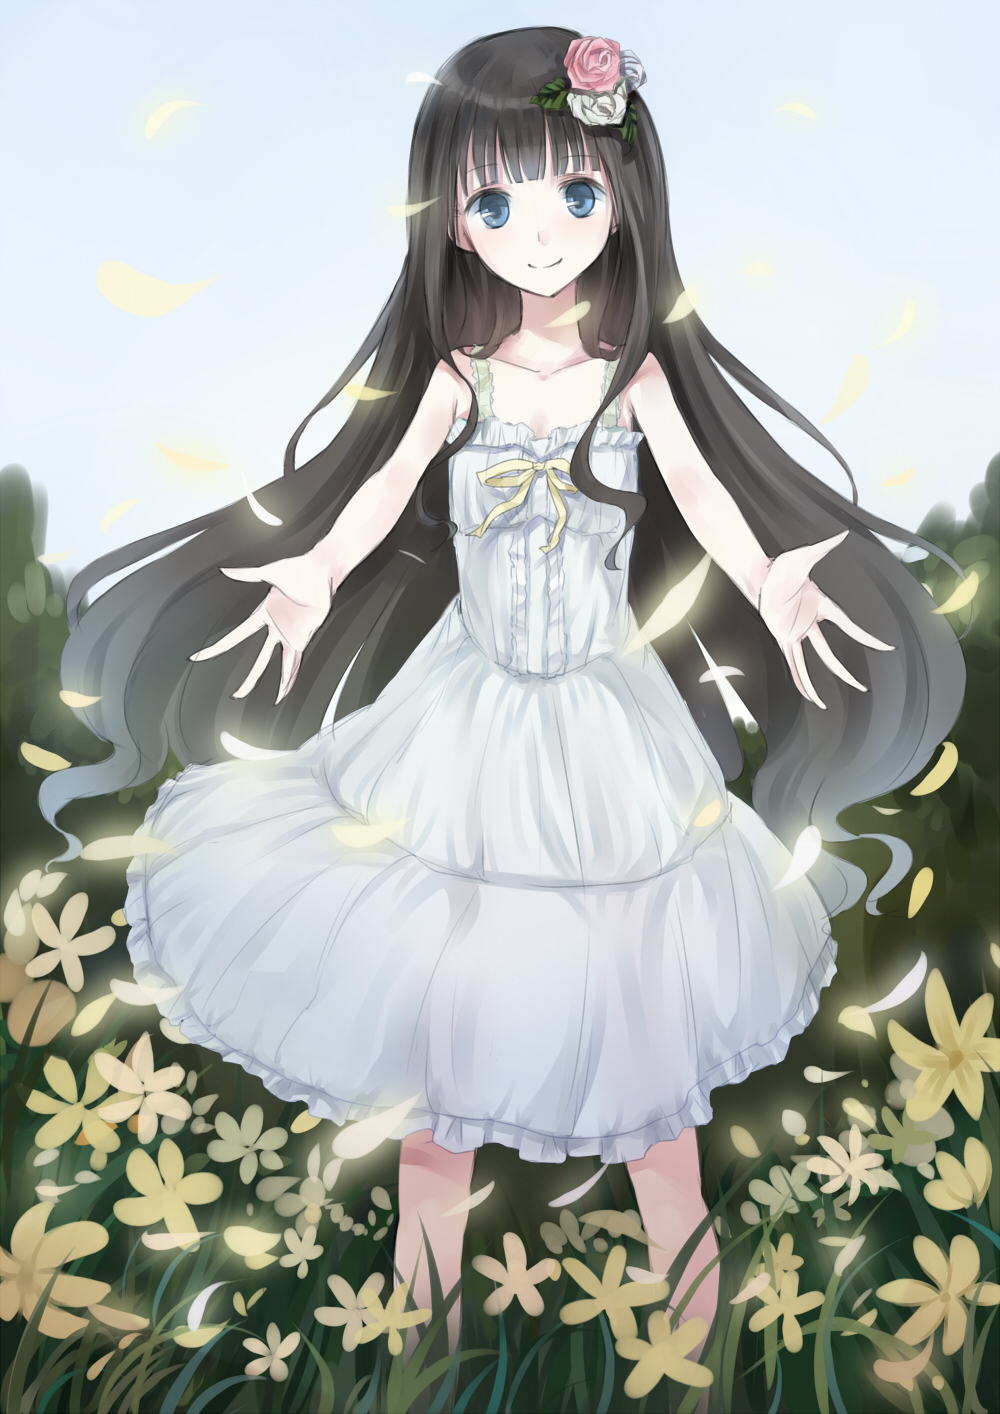 Anime girl with long black hair and blue eyes